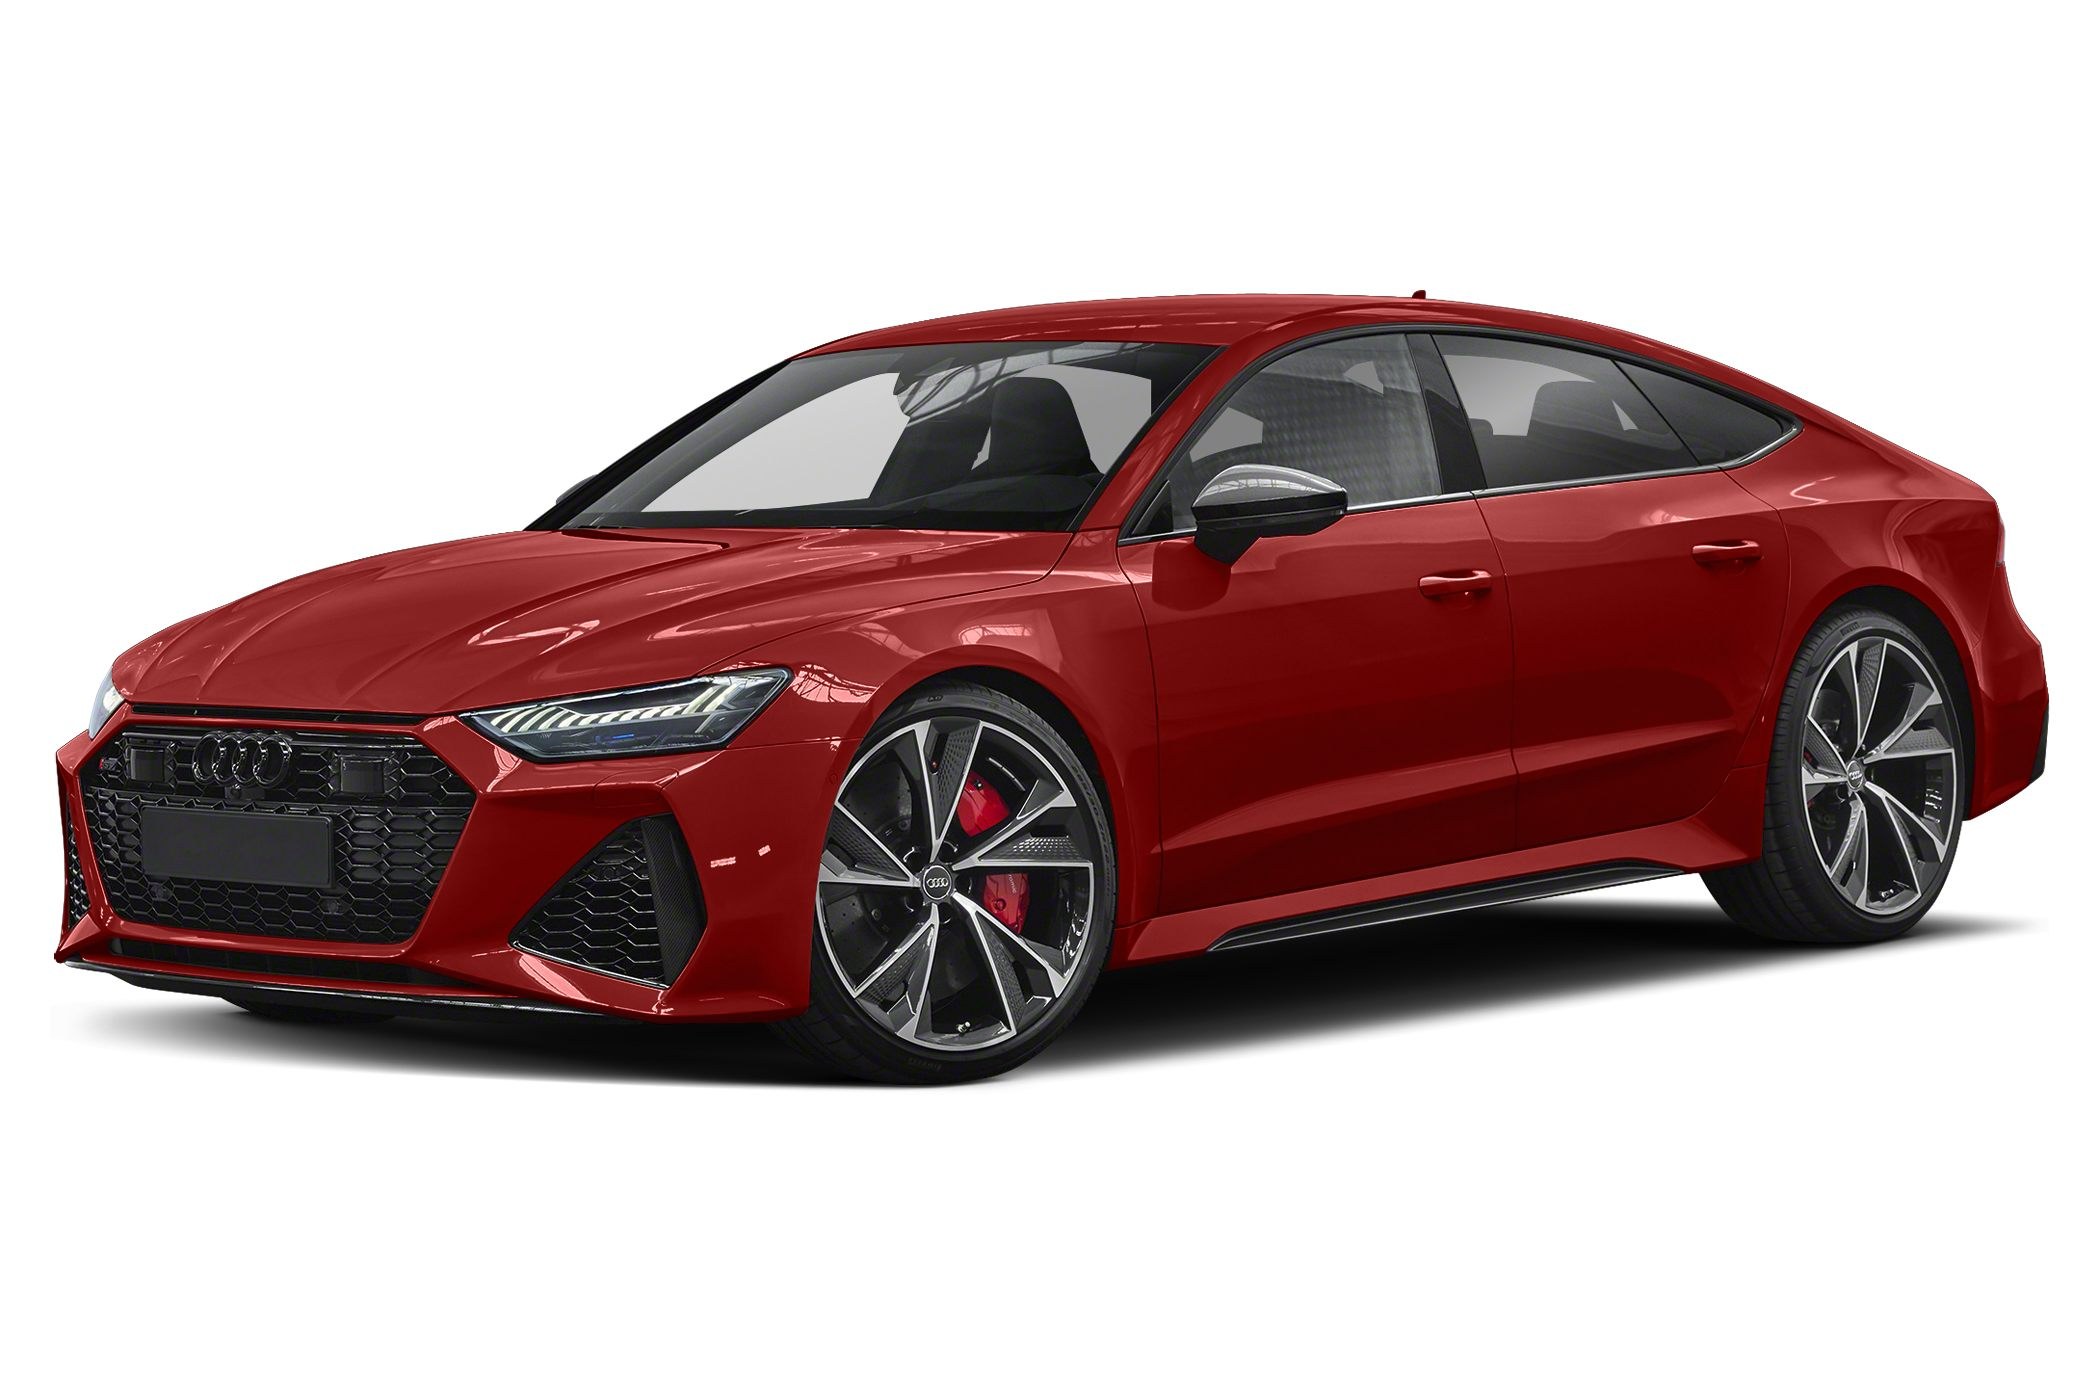 2021 Audi Rs 7 4 0t 4dr All Wheel Drive Quattro Sportback Specs And Prices